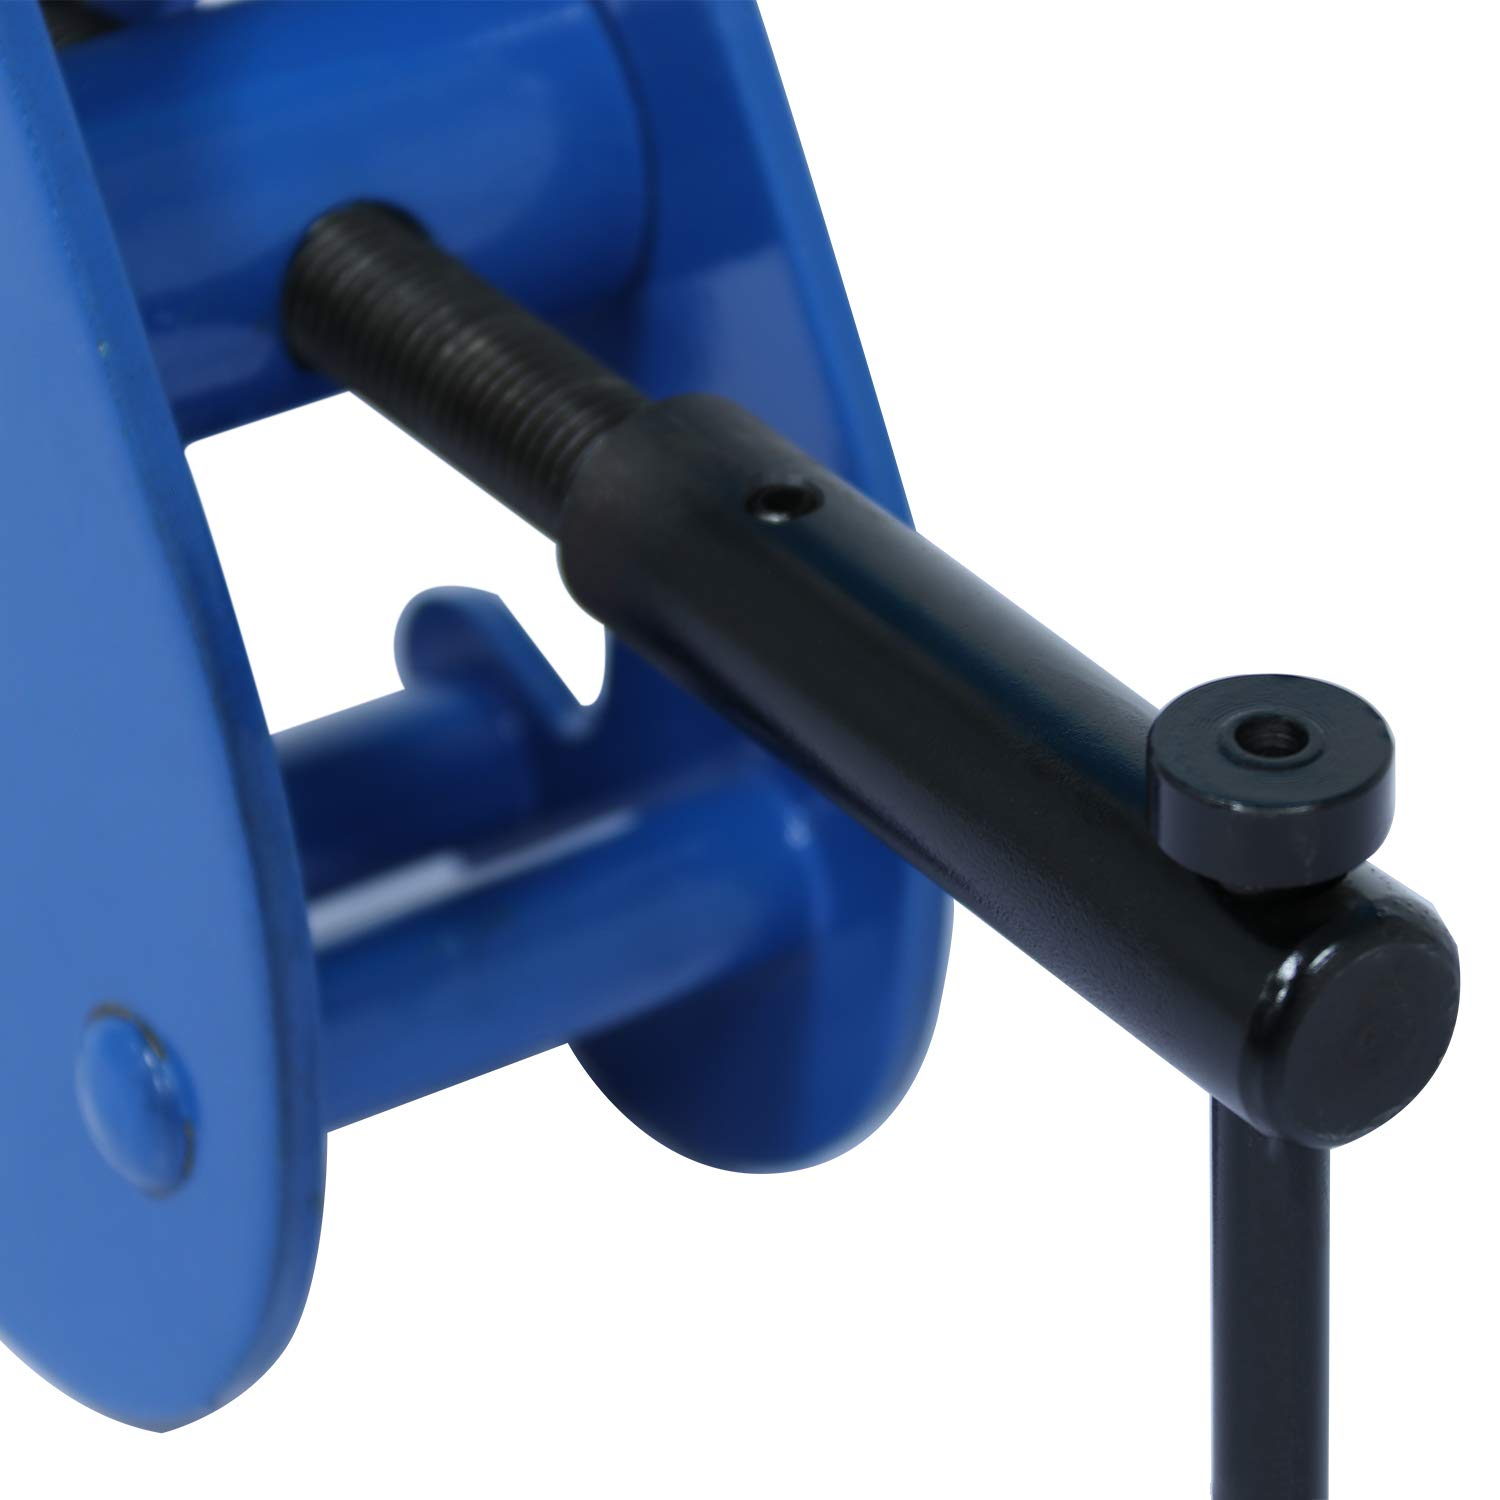 Amarite Vertical Beam Clamp 4400lbs (2 Ton) Working Load Limit: Home Improvement